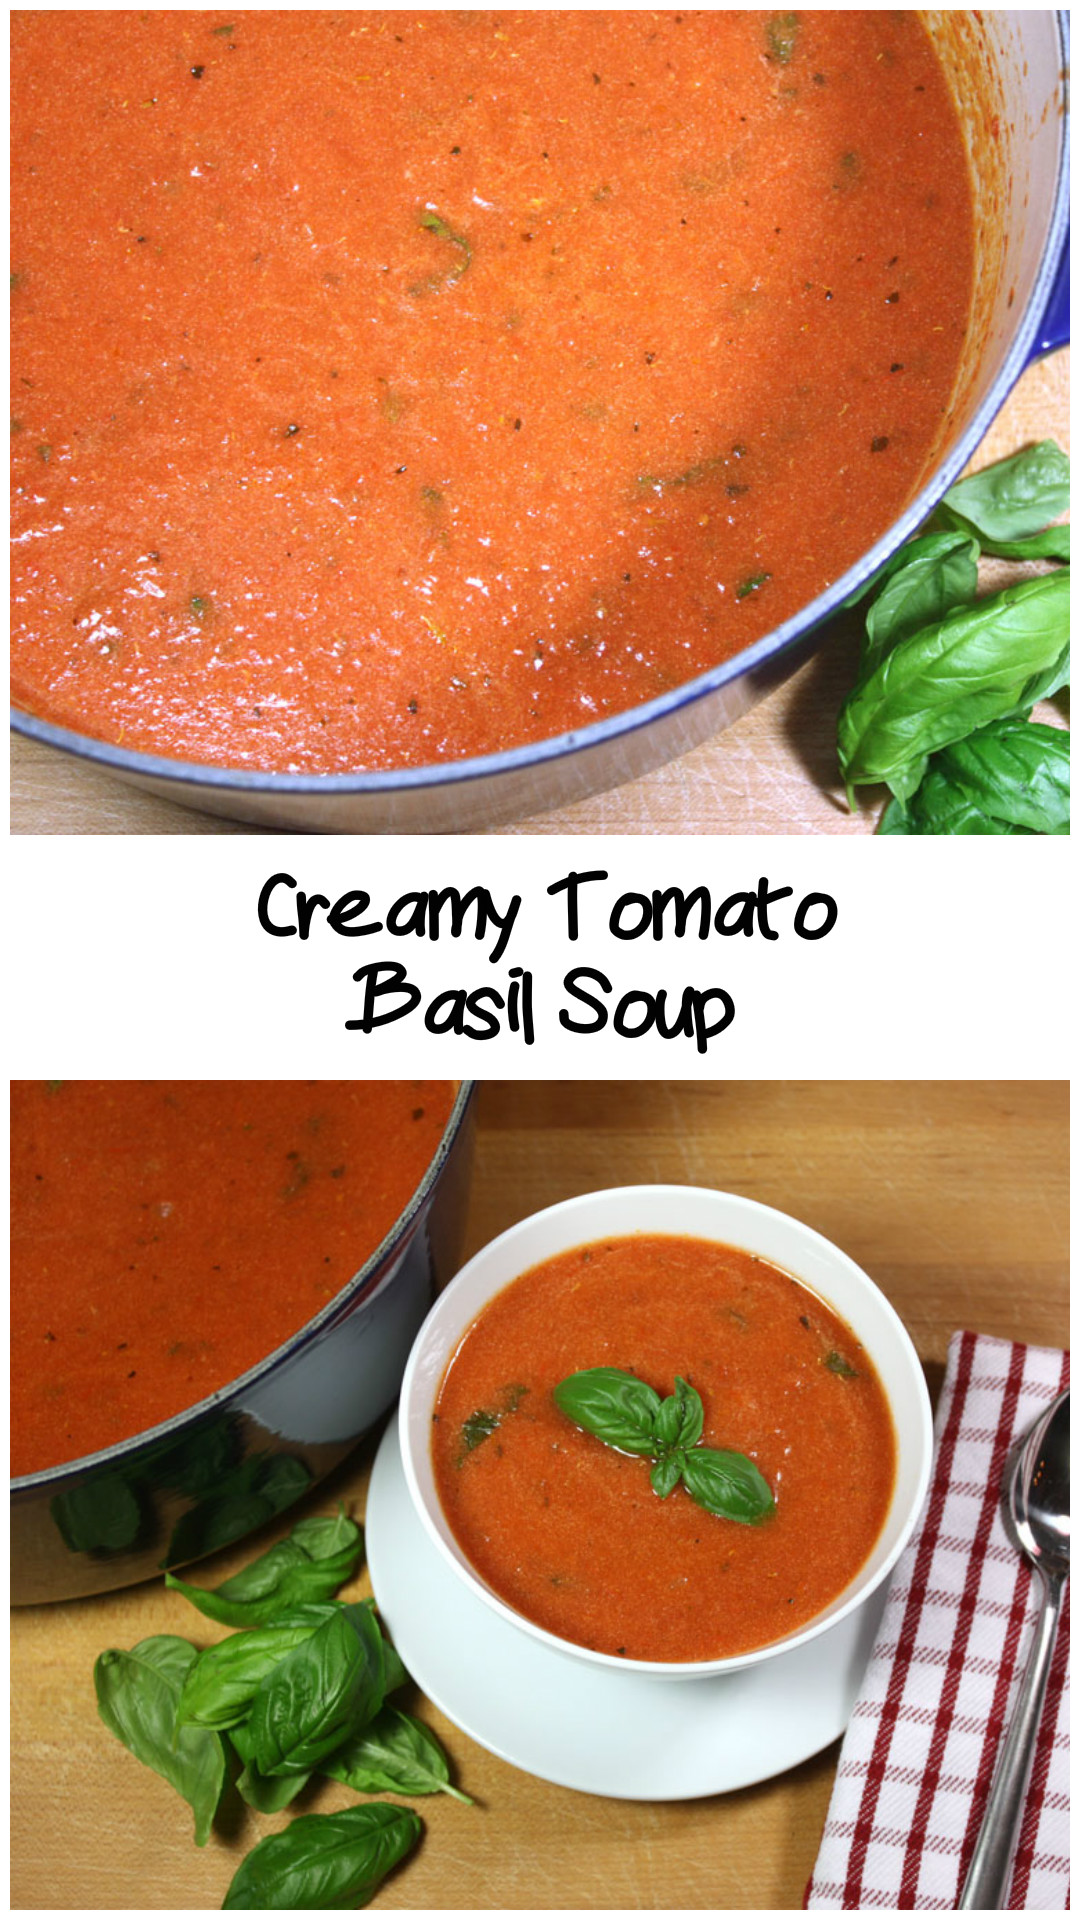 Creamy Tomato Basil Soup - Creamy, hearty, flavorful tomato soup! This is a must-have cold weather recipe.